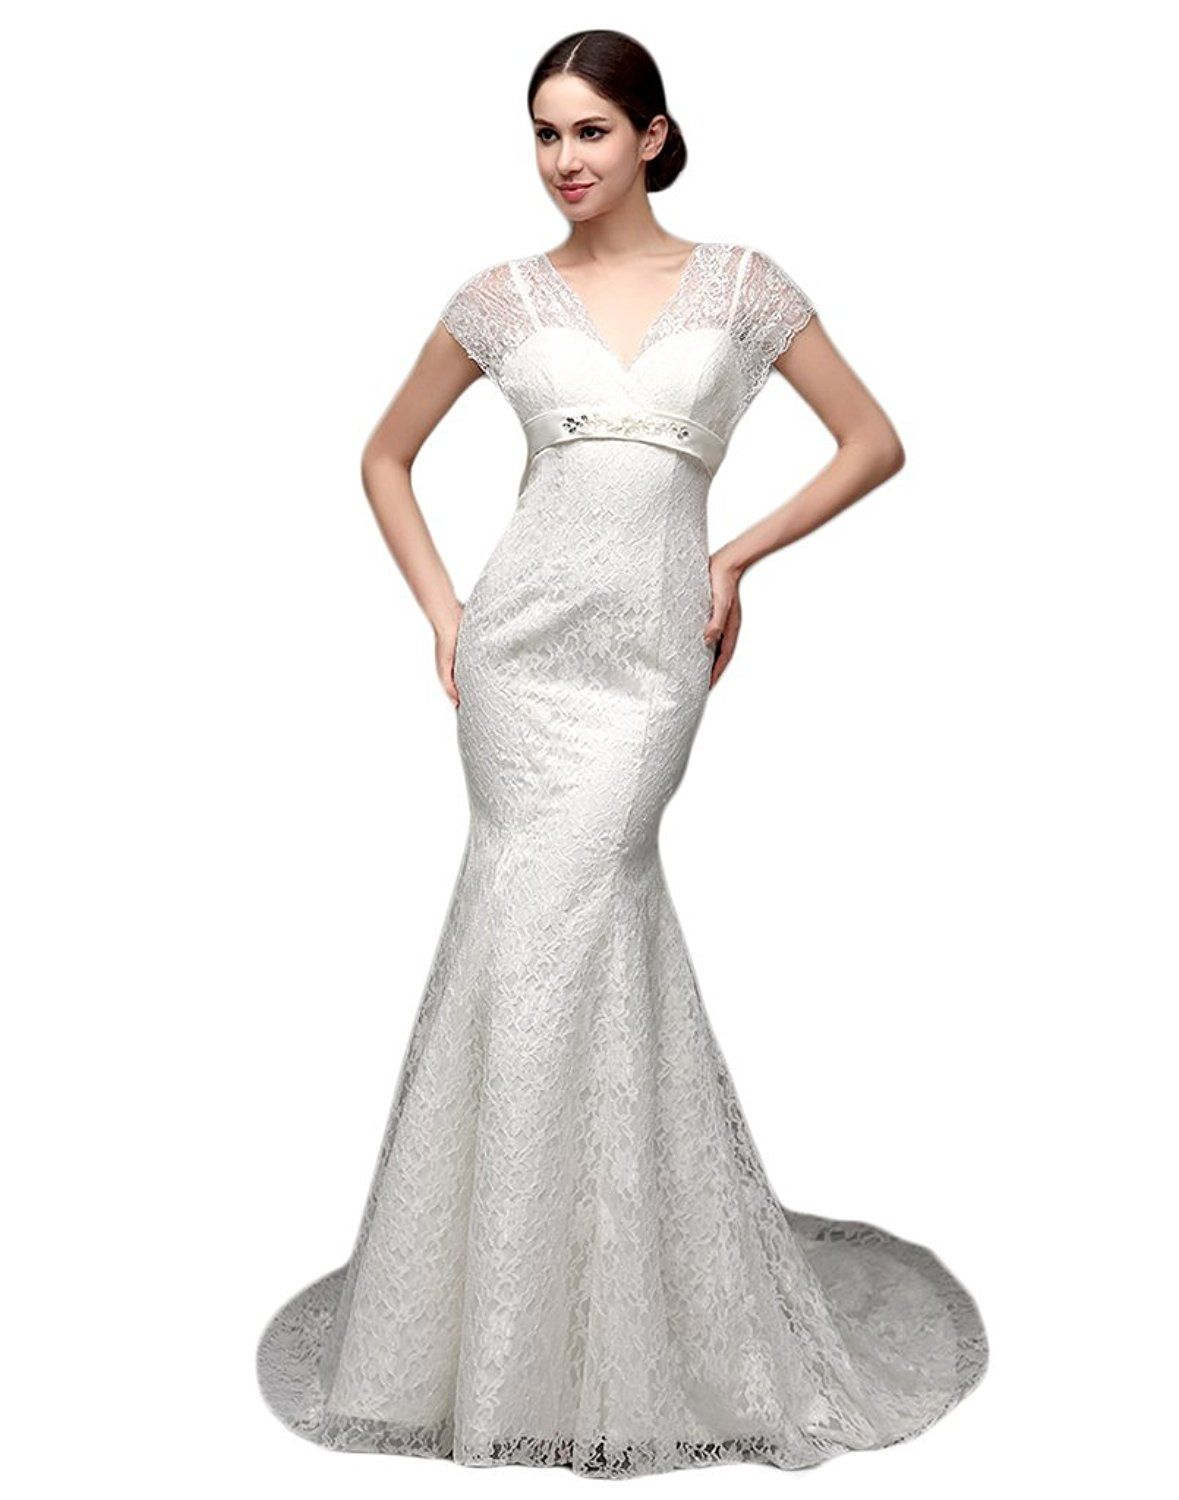 Nitree elegant mermaid wedding dress big bow beads short